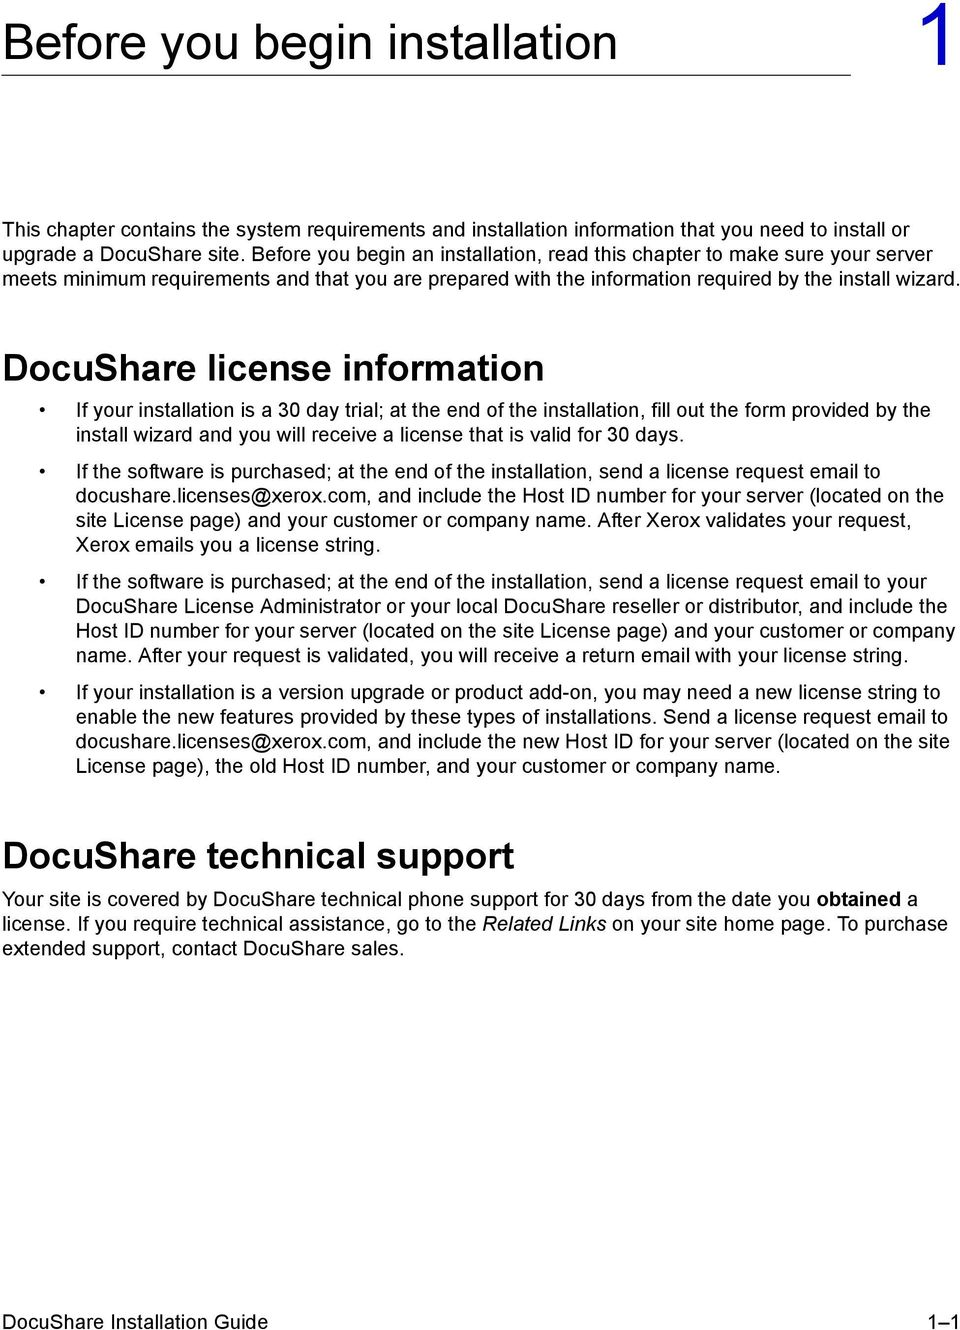 DocuShare license information If your installation is a 30 day trial; at the end of the installation, fill out the form provided by the install wizard and you will receive a license that is valid for